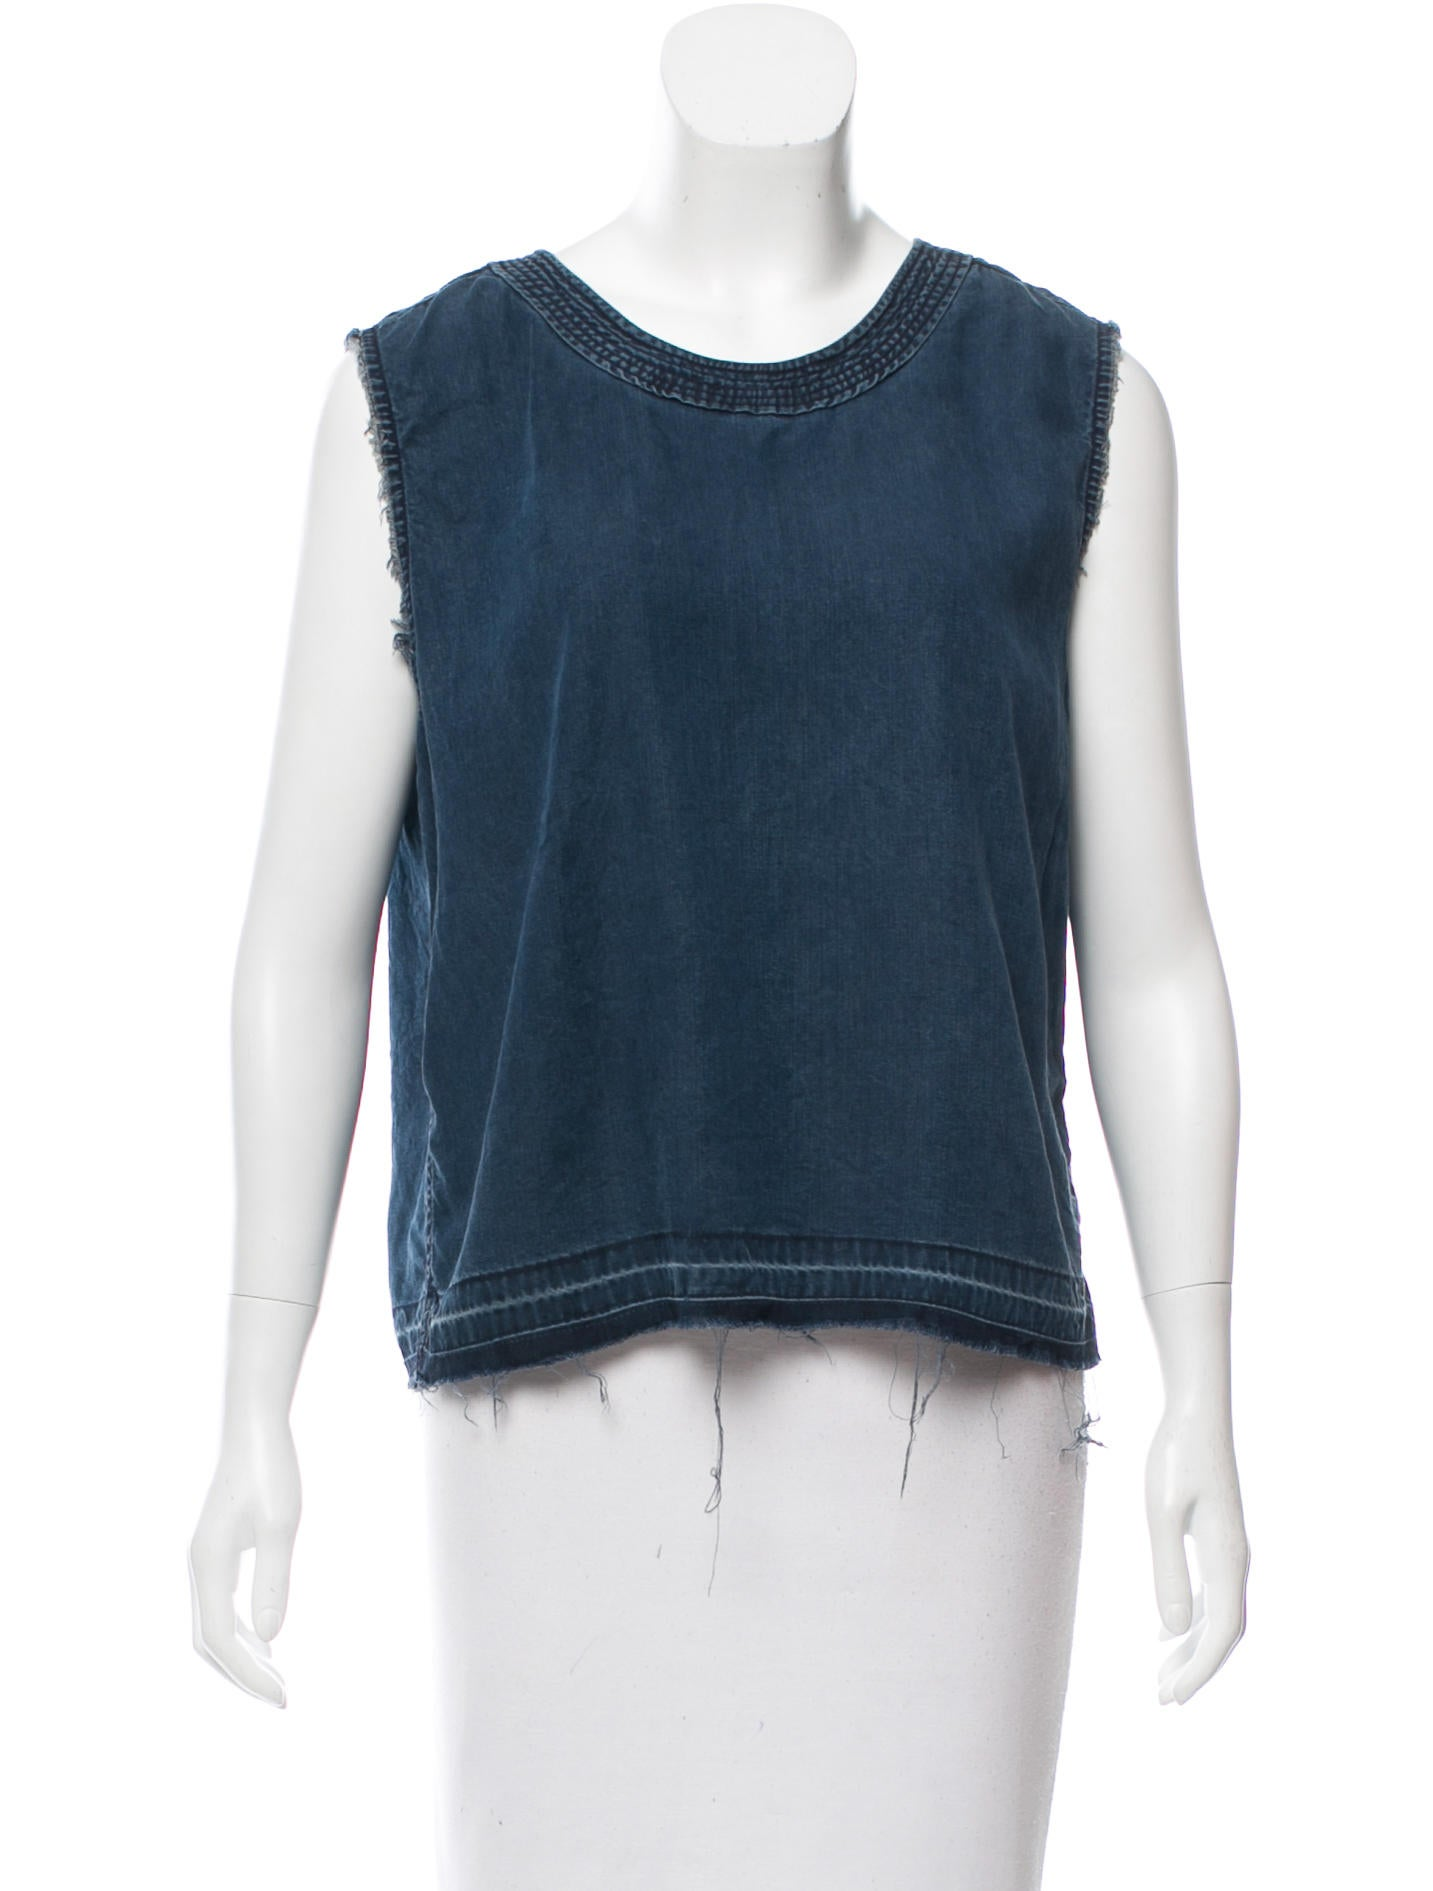 Rag bone sleeveless chambray top clothing wragb71709 for Chambray top